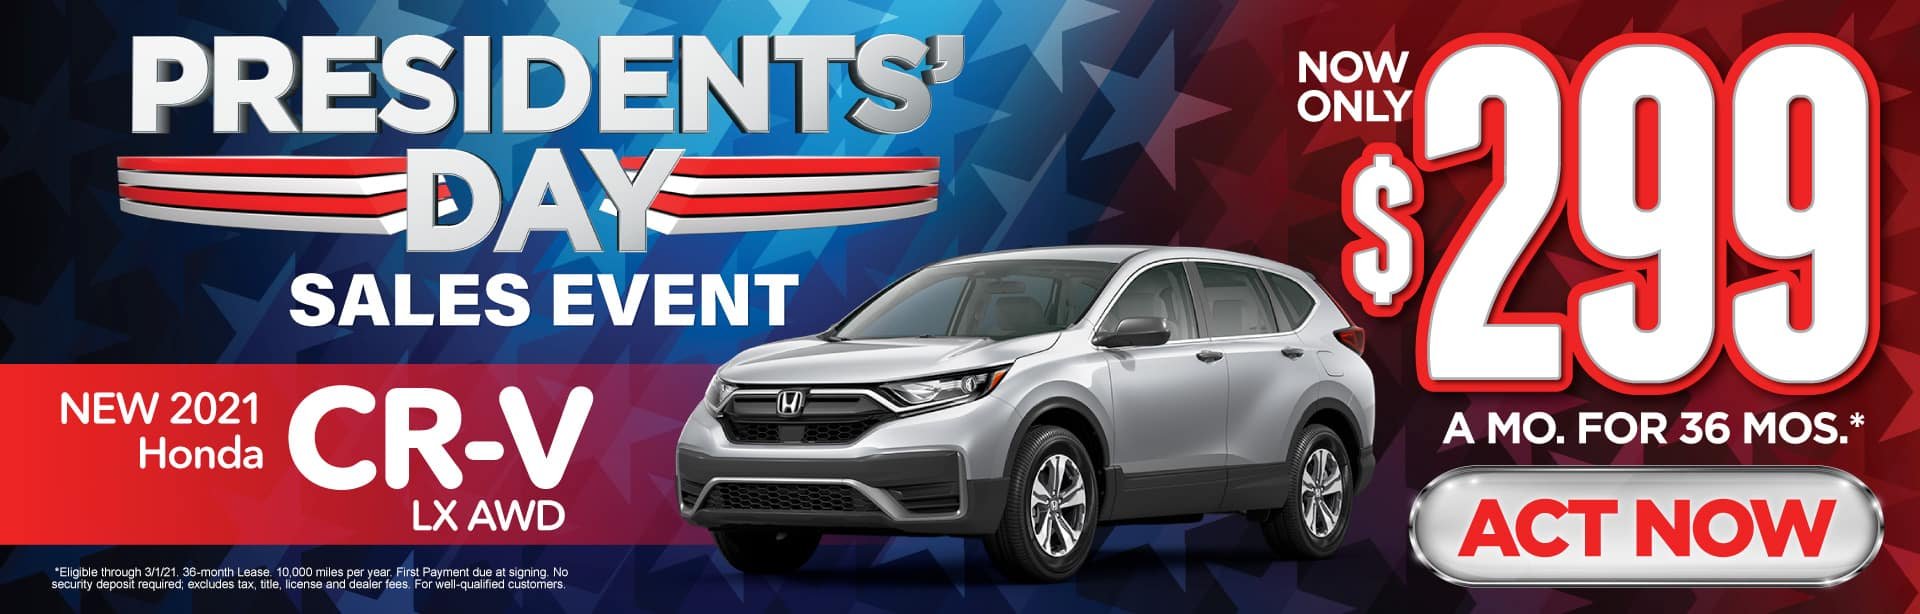 New 2021 Honda CR-V - Only $299 a month - Act Now